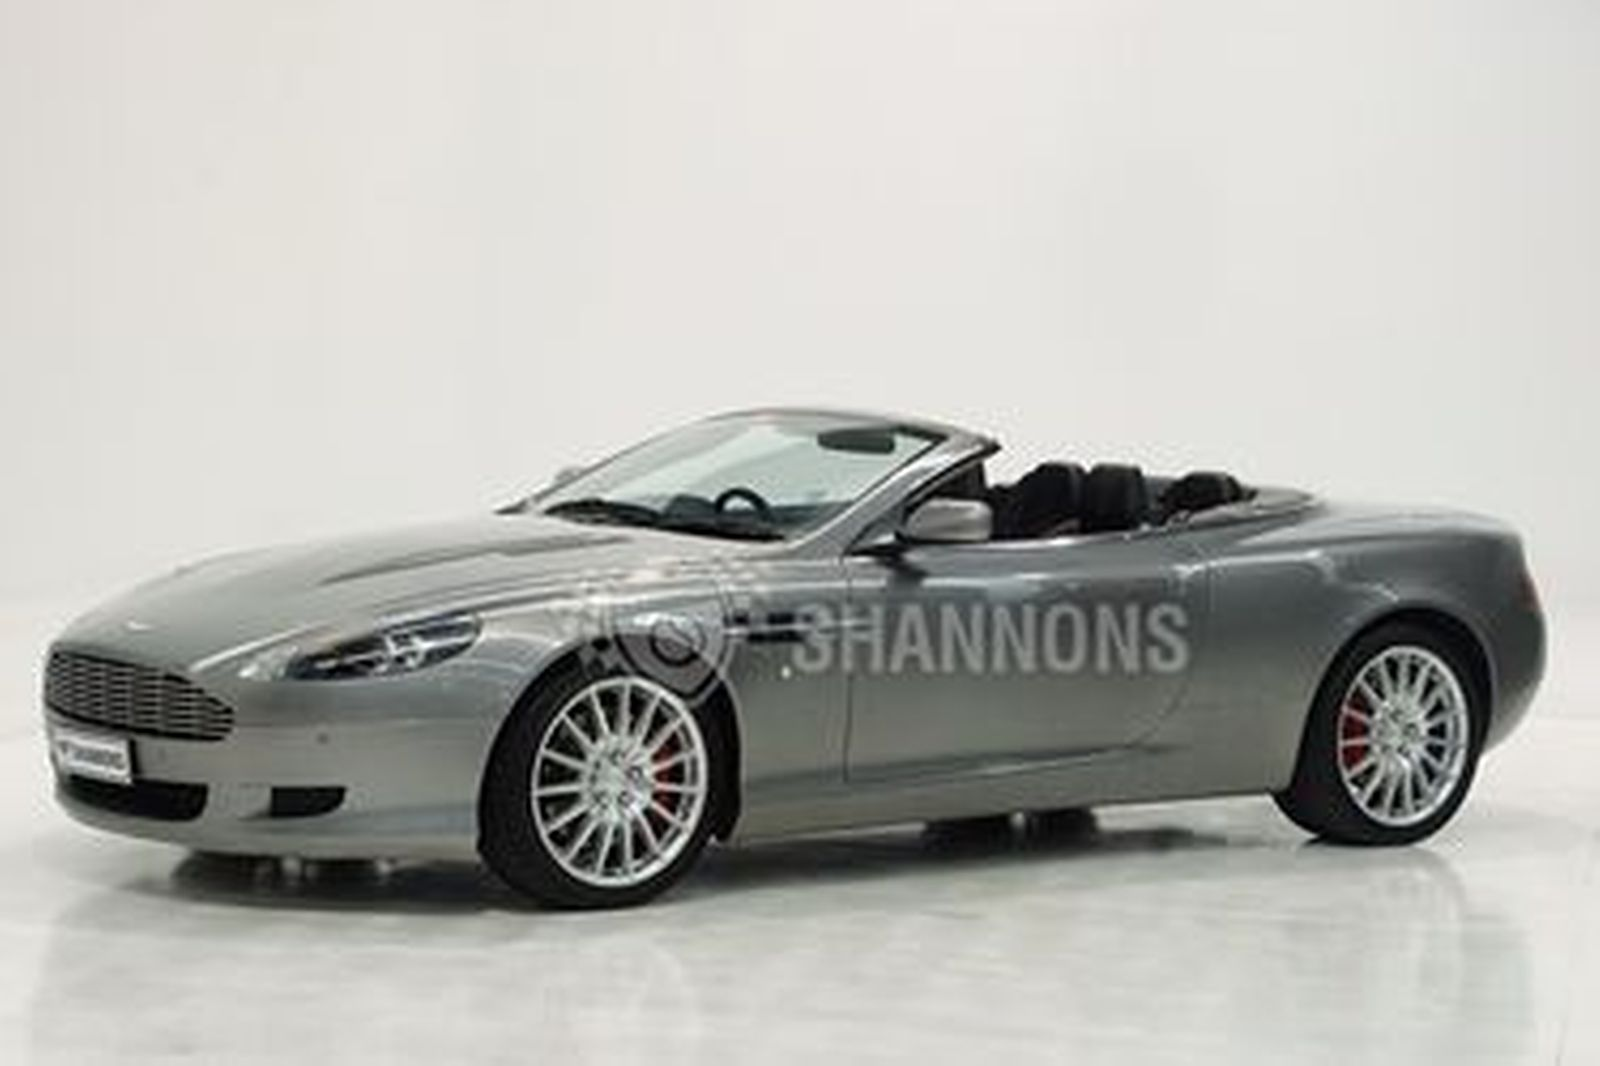 Aston Martin Db9 Volante V12 Convertible Auctions Lot 41 Shannons